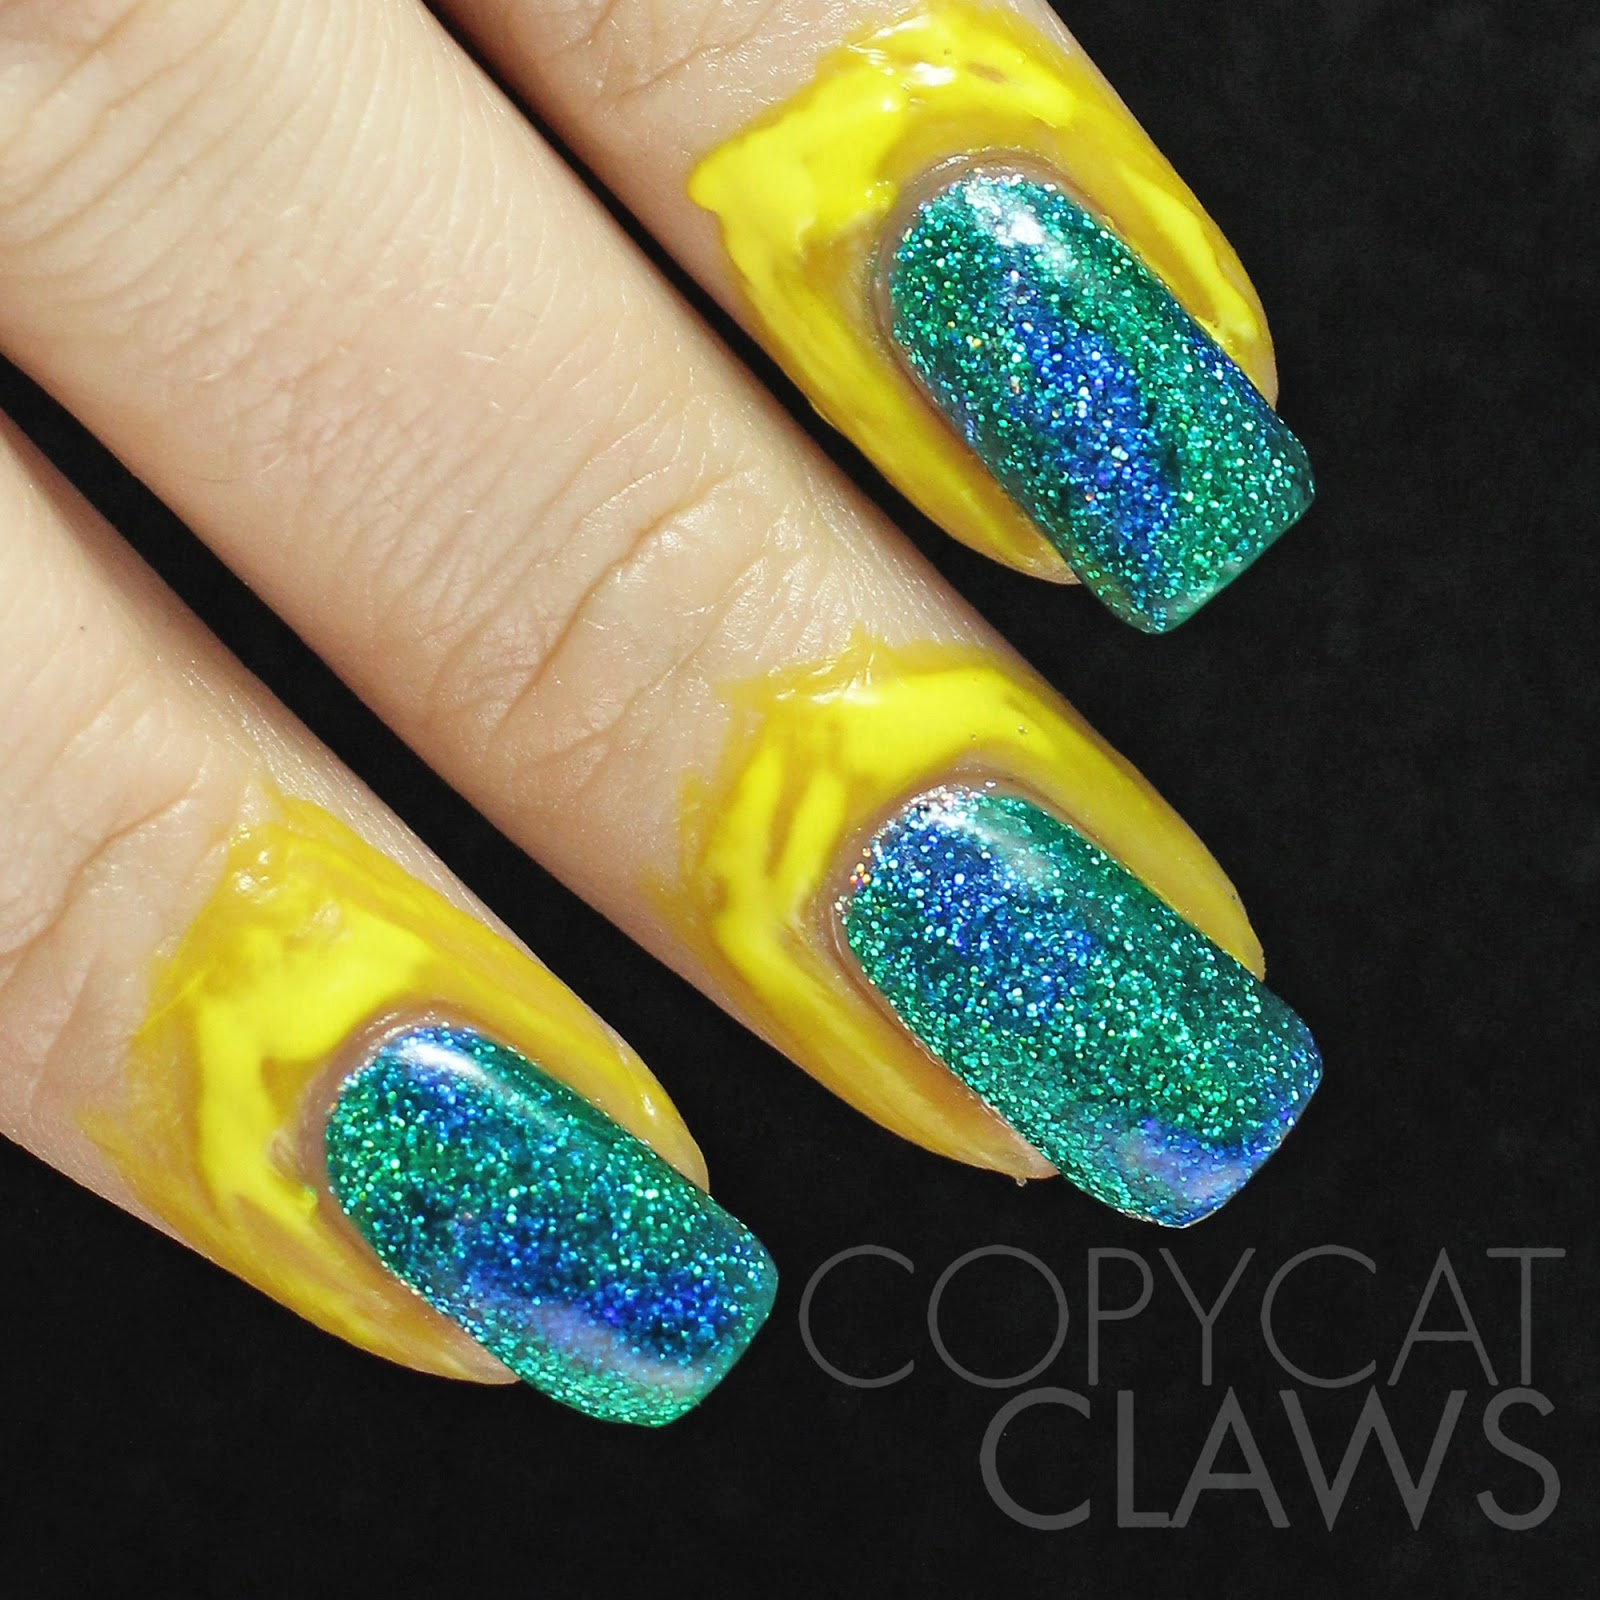 Copycat Claws Blue Color Block Nail Art: Copycat Claws: Nail Stamping Over Glitter And Color4Nails